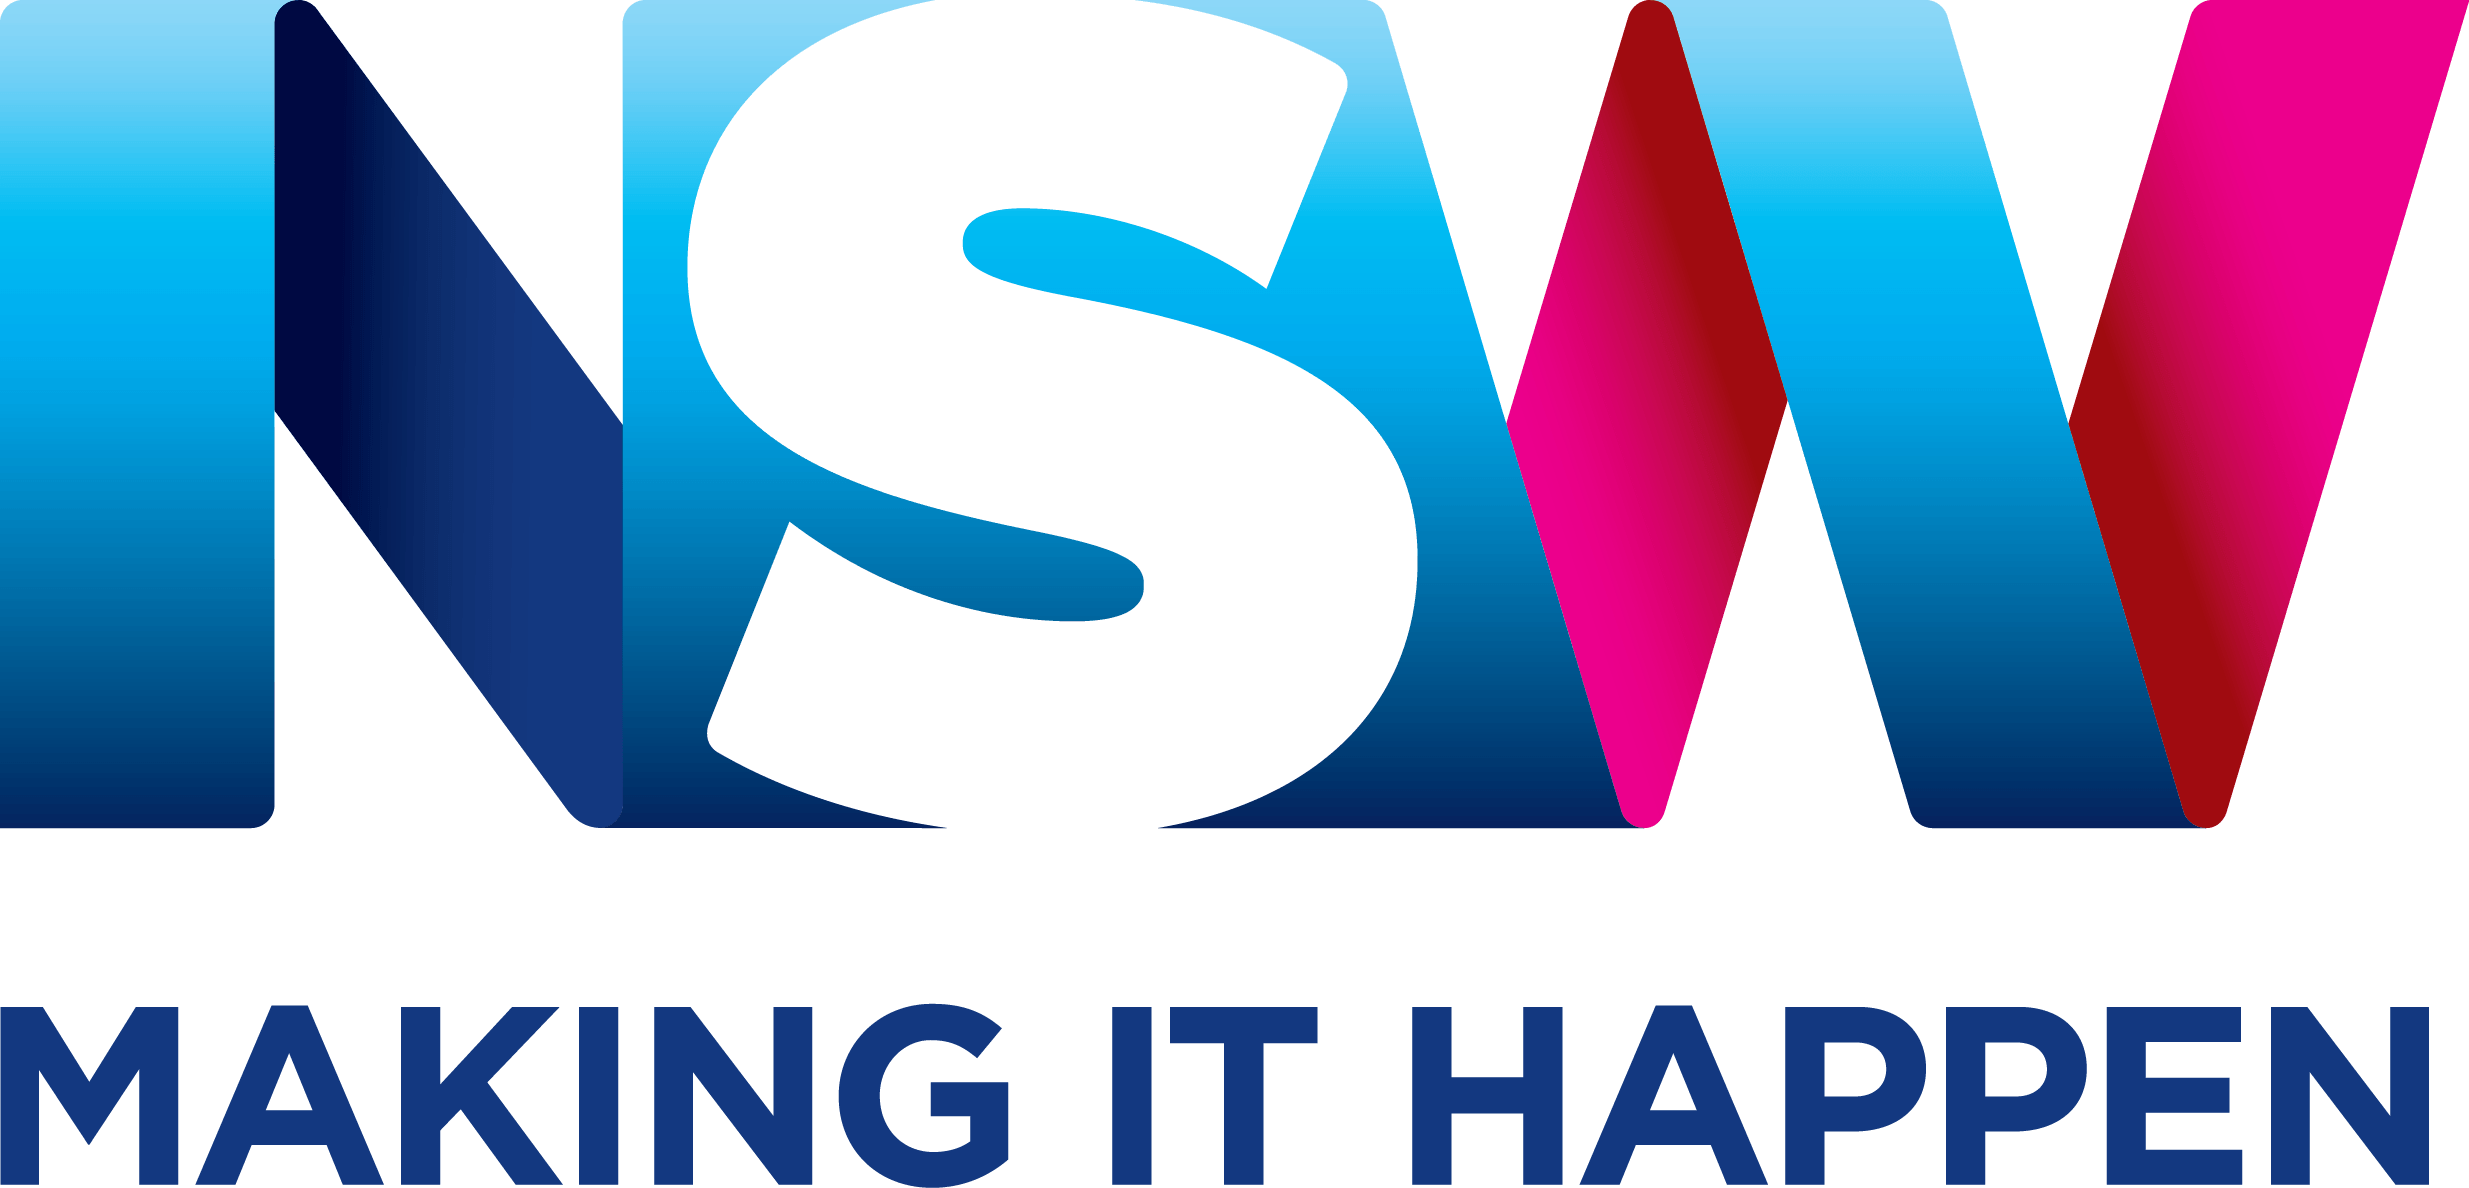 NSW Government – Making It Happen